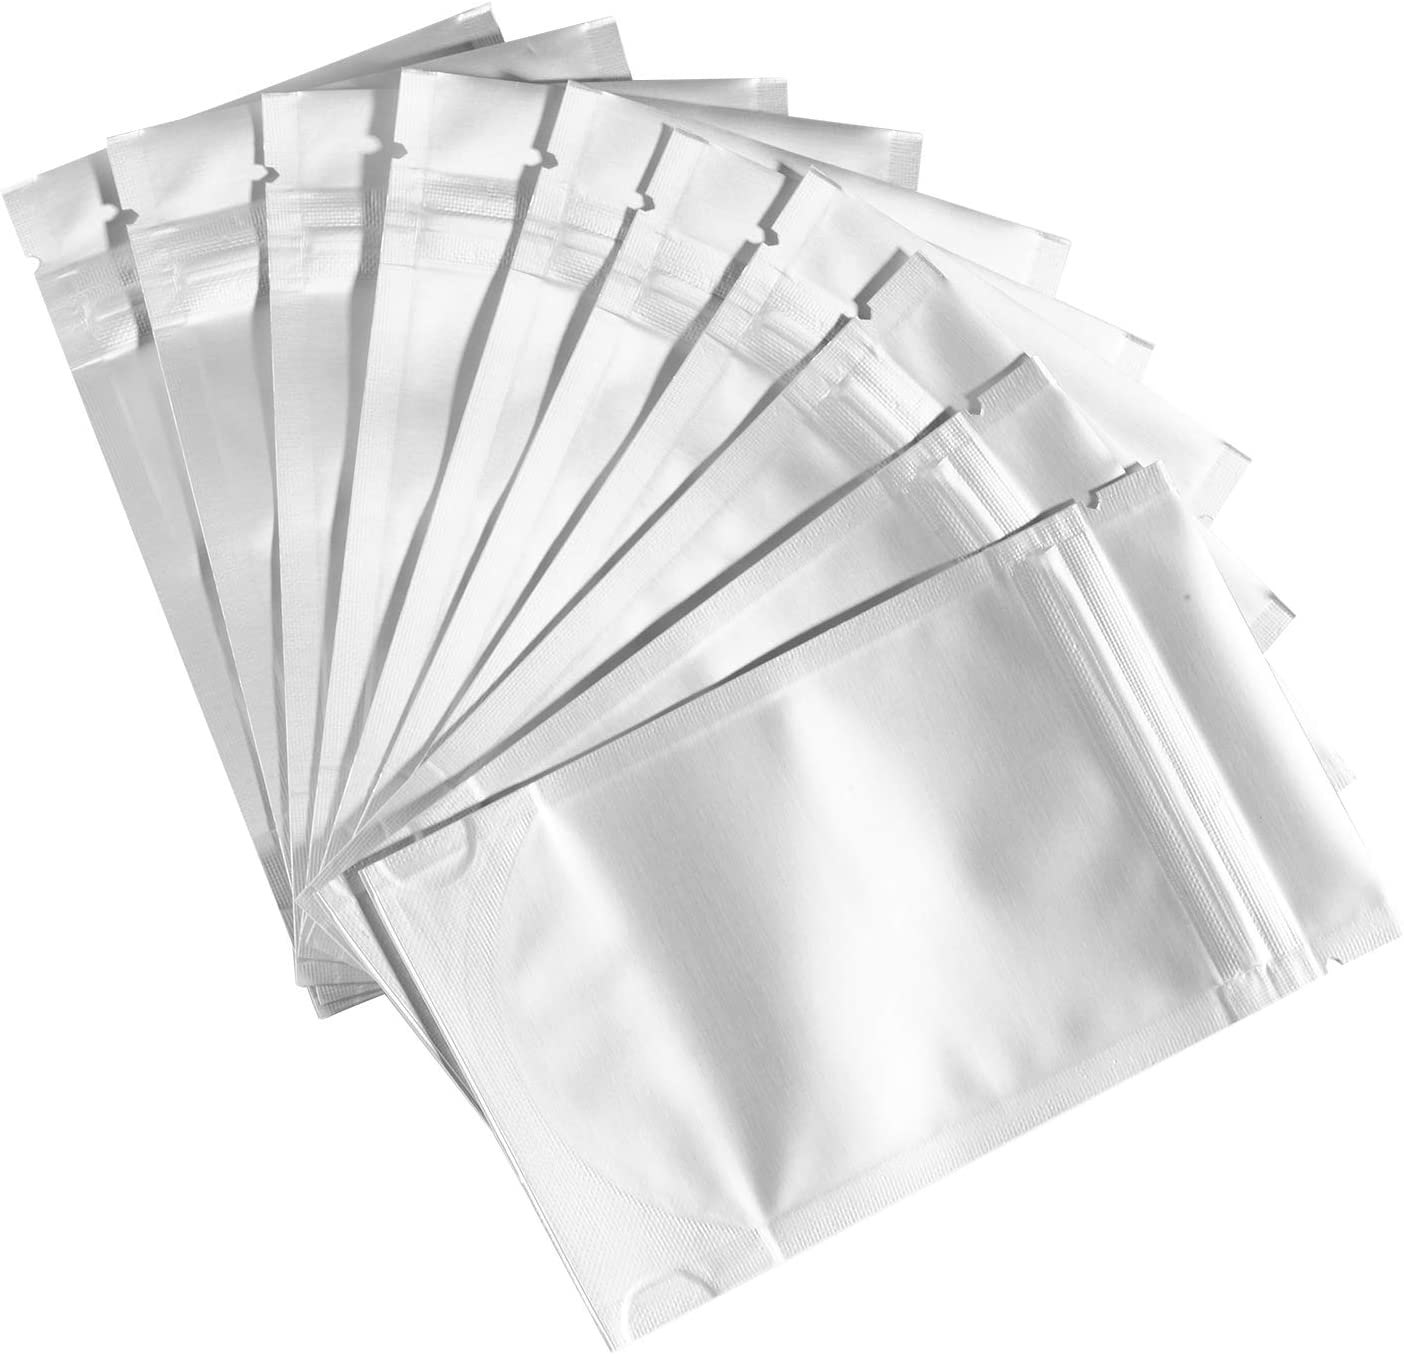 100PCS/PACK 3X5inch Resealable Stand up Mylar Ziplock Bags for Food Storage, Smell Proof Packaging Bags with Foil Aluminum, Heat Sealable Pouch Bag.